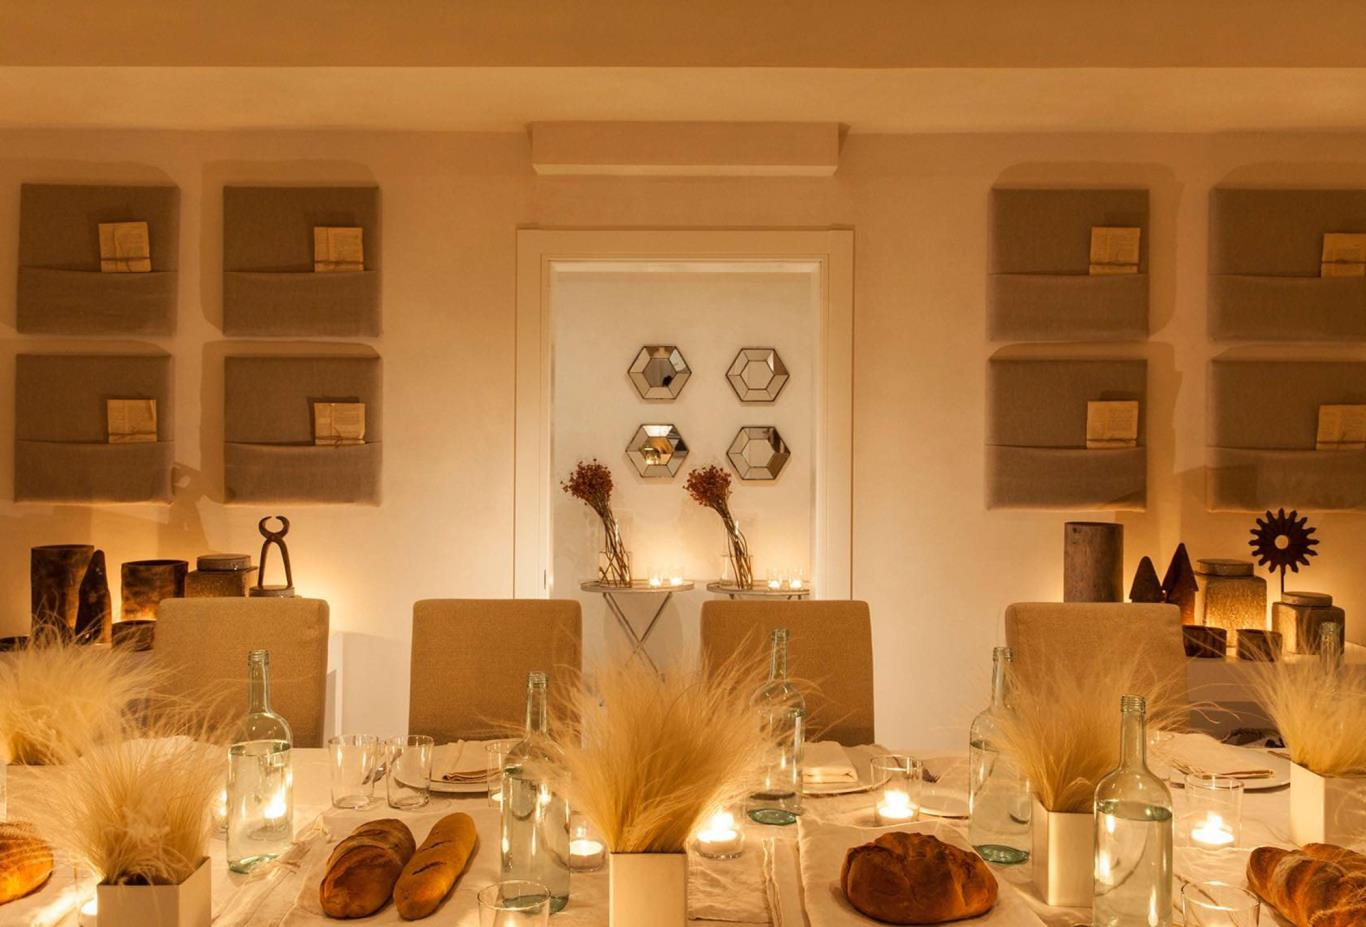 Villa Padronale dining